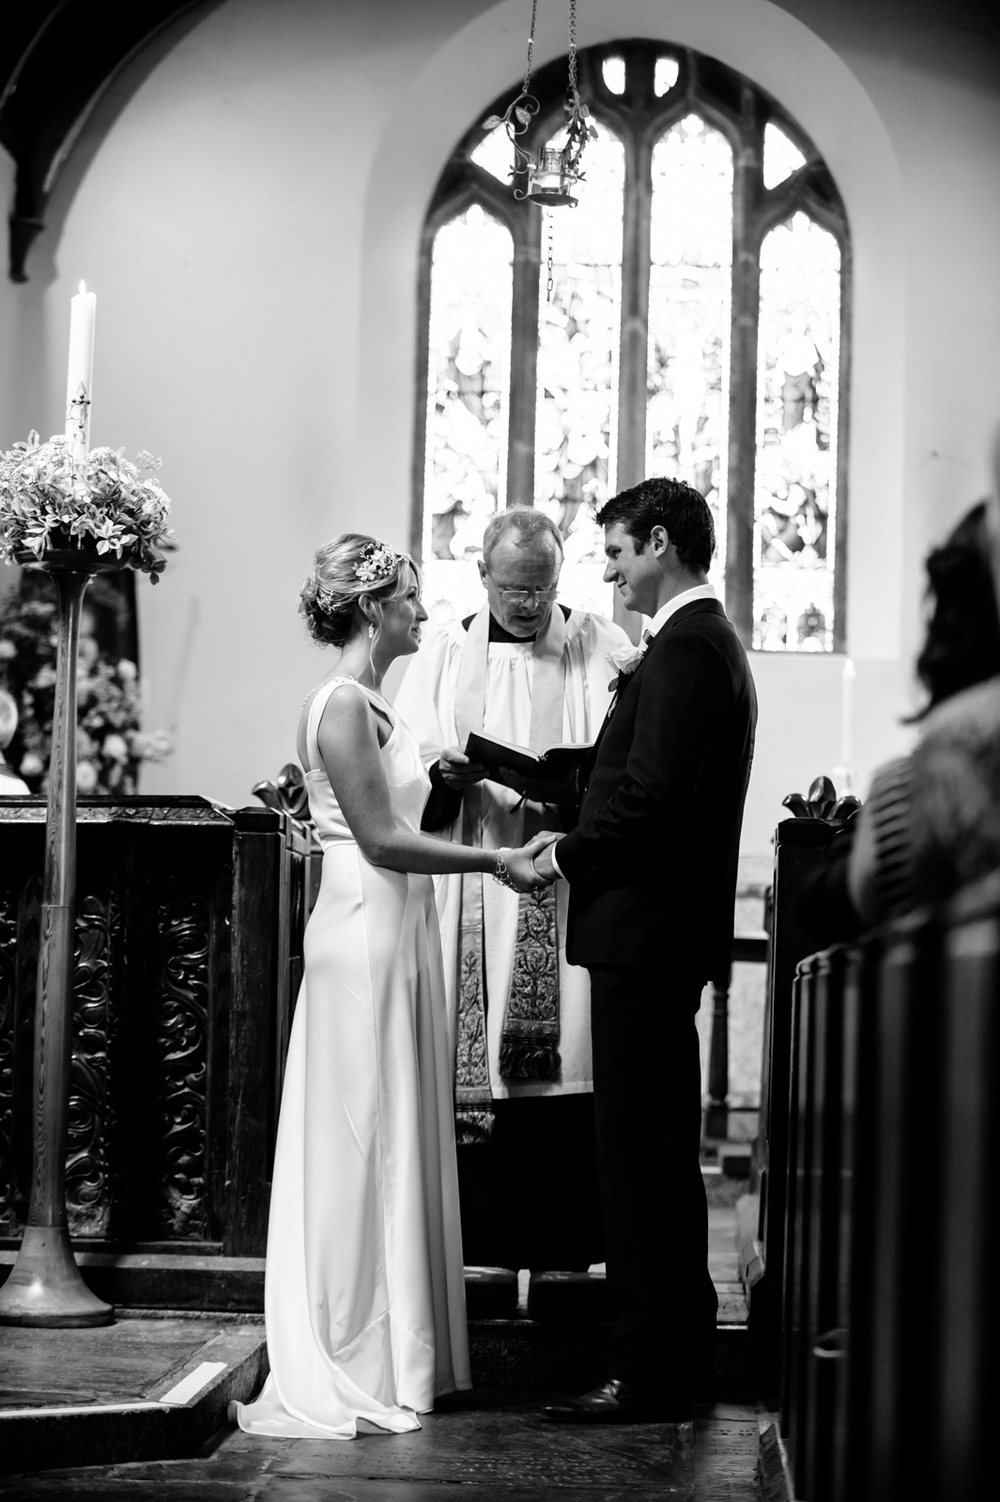 mylor-church-wedding-40.jpg